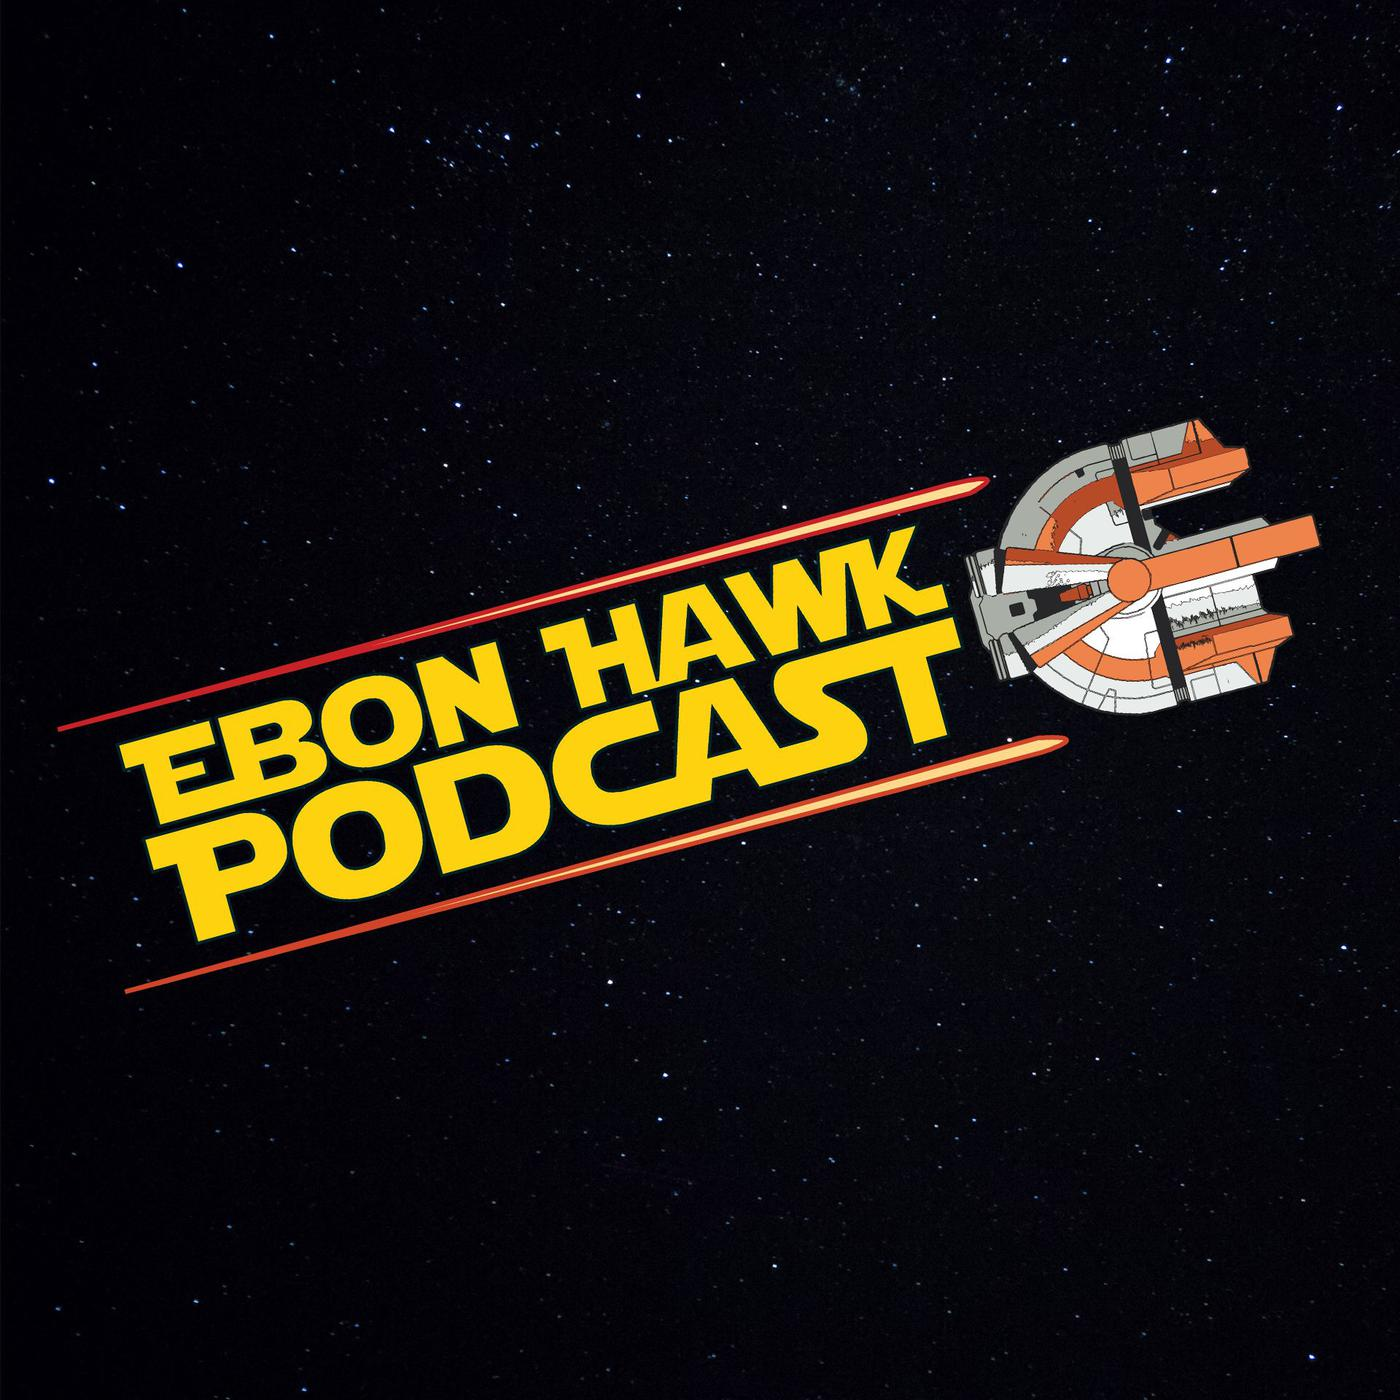 The Ebon Hawk Podcast The Ebon Hawk Listen Notes The fastest ship in the outer rim! the ebon hawk is remembered as the 'millennium falcon' of the expanded universe. the ebon hawk podcast the ebon hawk